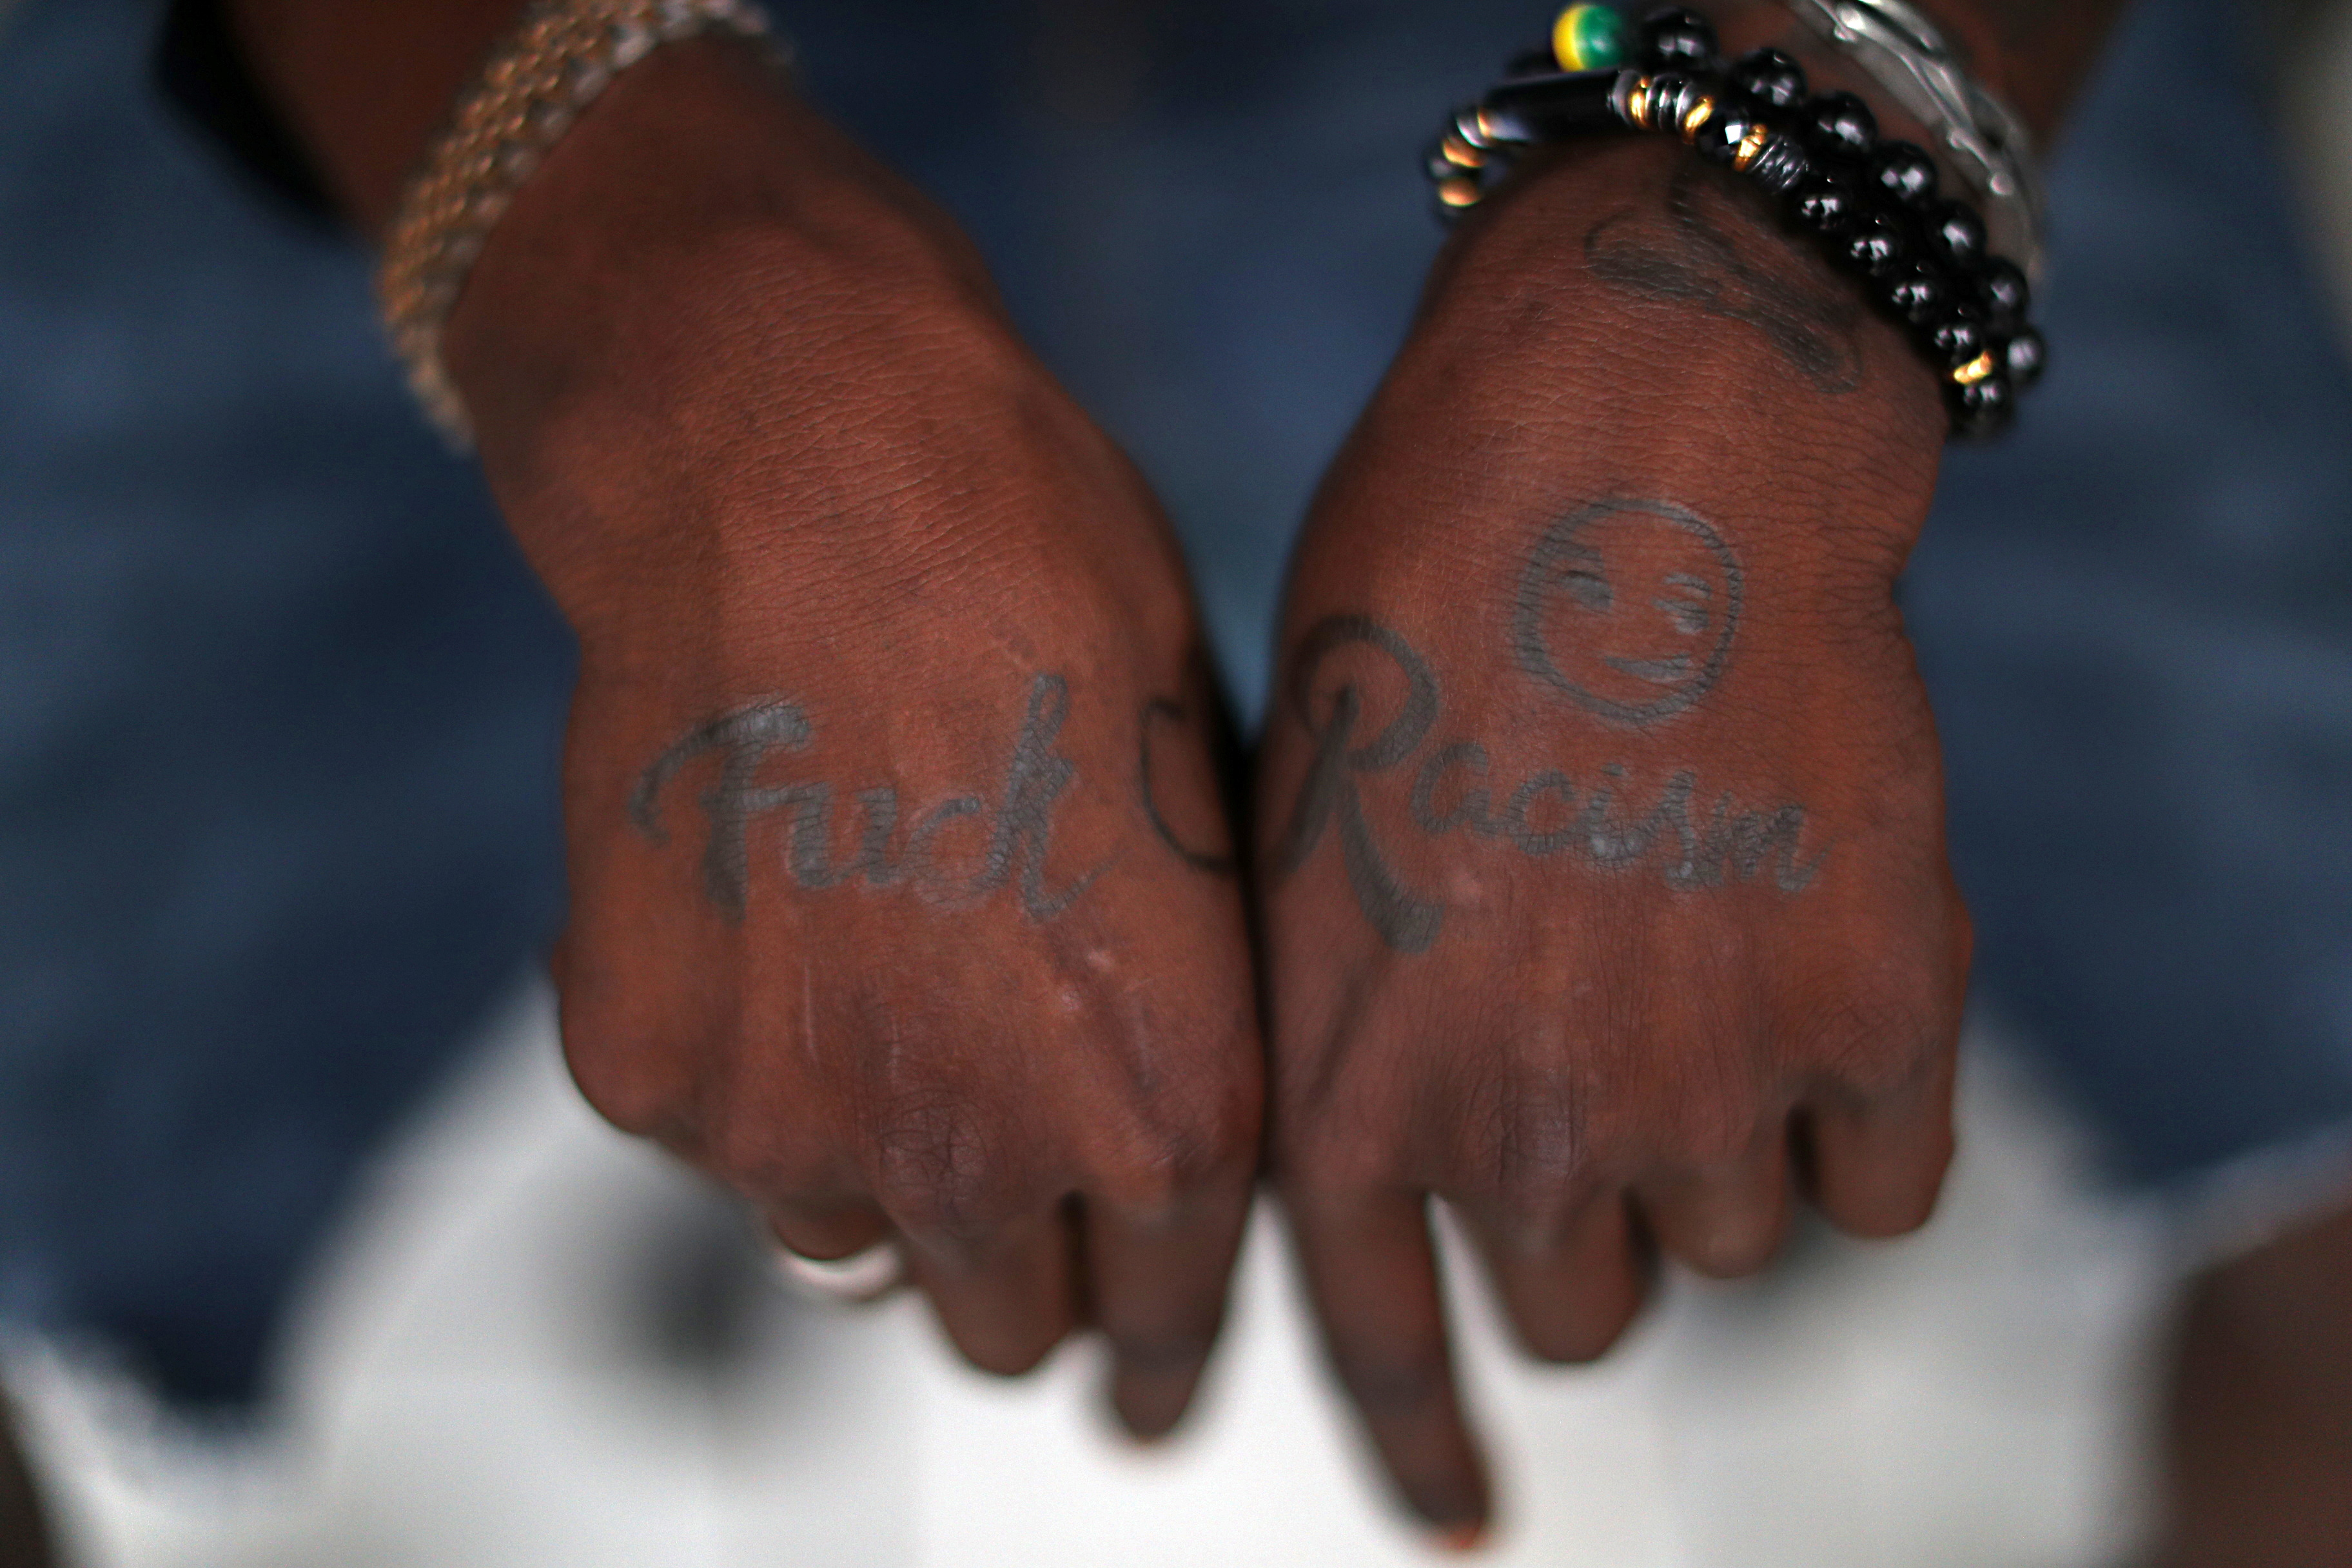 SENSITIVE MATERIAL. THIS IMAGE MAY OFFEND OR DISTURB  A migrant from Haiti shows the tattoos on his hands, as thousands of Haitians were detained, deported or expelled from a camp on Mexico's frontier with Texas last week and others traveled west to the border city of Tijuana while aiming to avoid a crackdown on a recent spike in migrant traffic, in Tijuana, Mexico September 27, 2021. REUTERS/Edgard Garrido